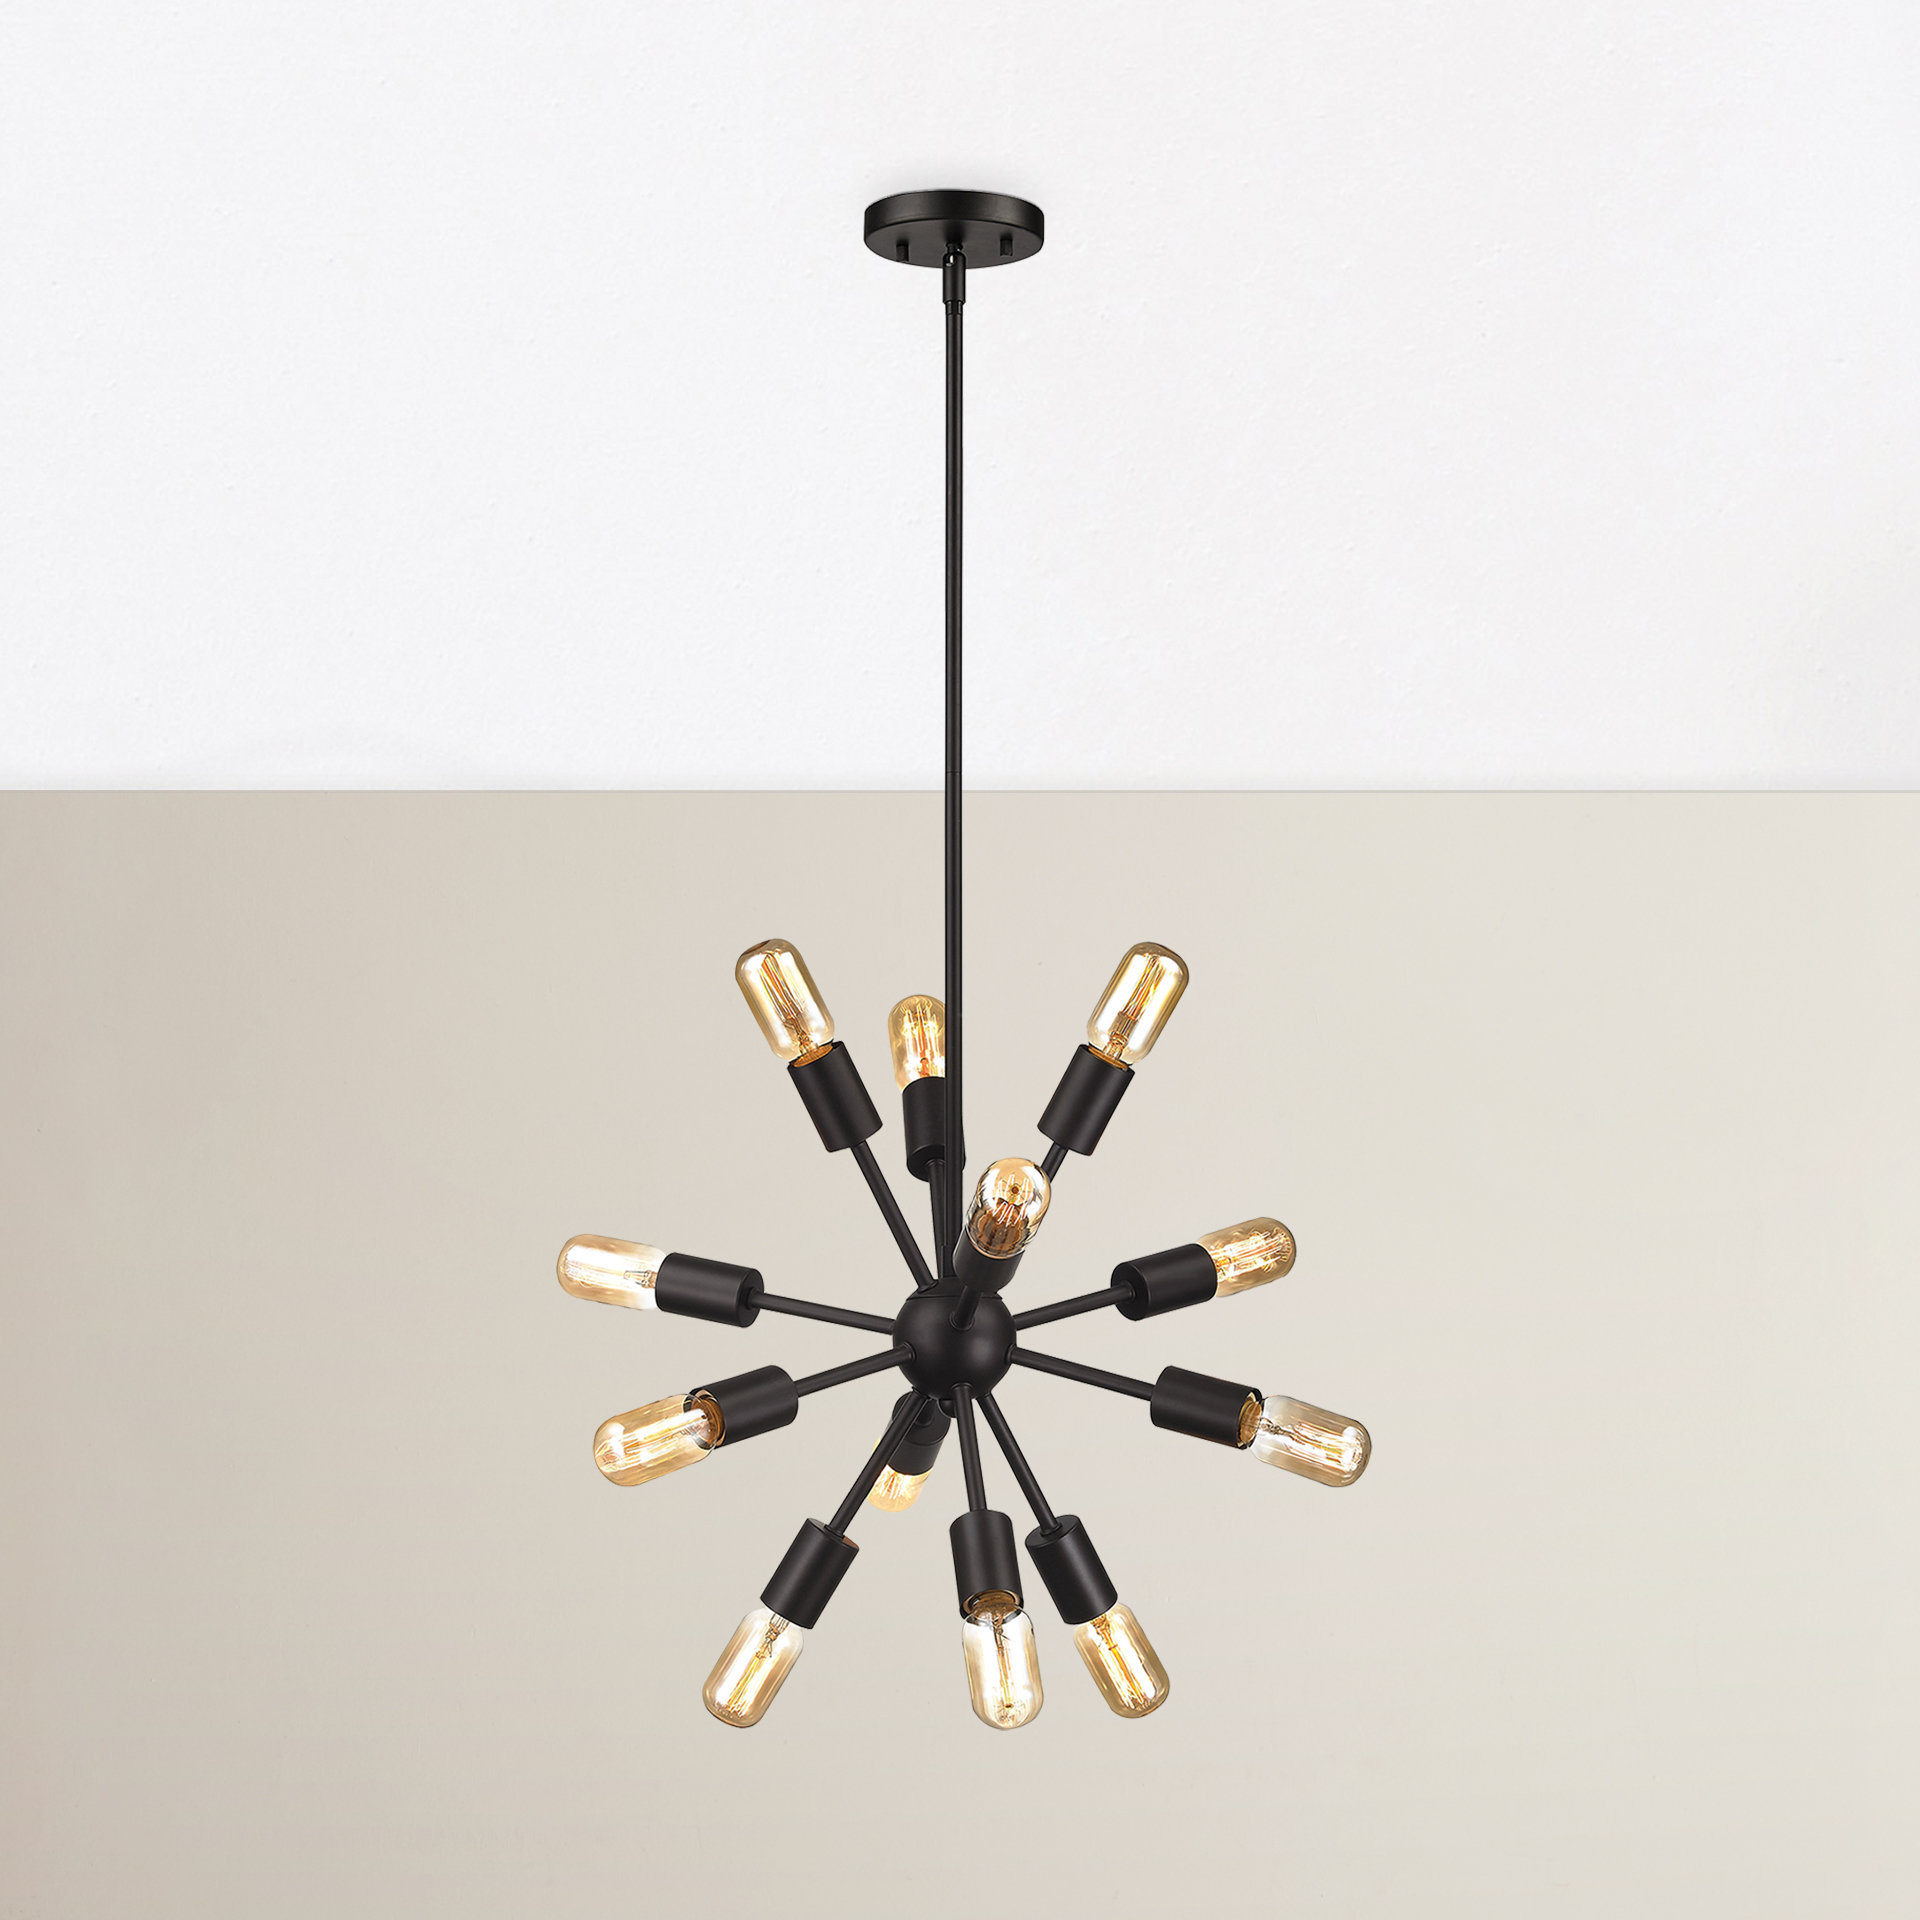 Kendall 12 Light Sputnik Chandelier With Vroman 12 Light Sputnik Chandeliers (Gallery 8 of 30)